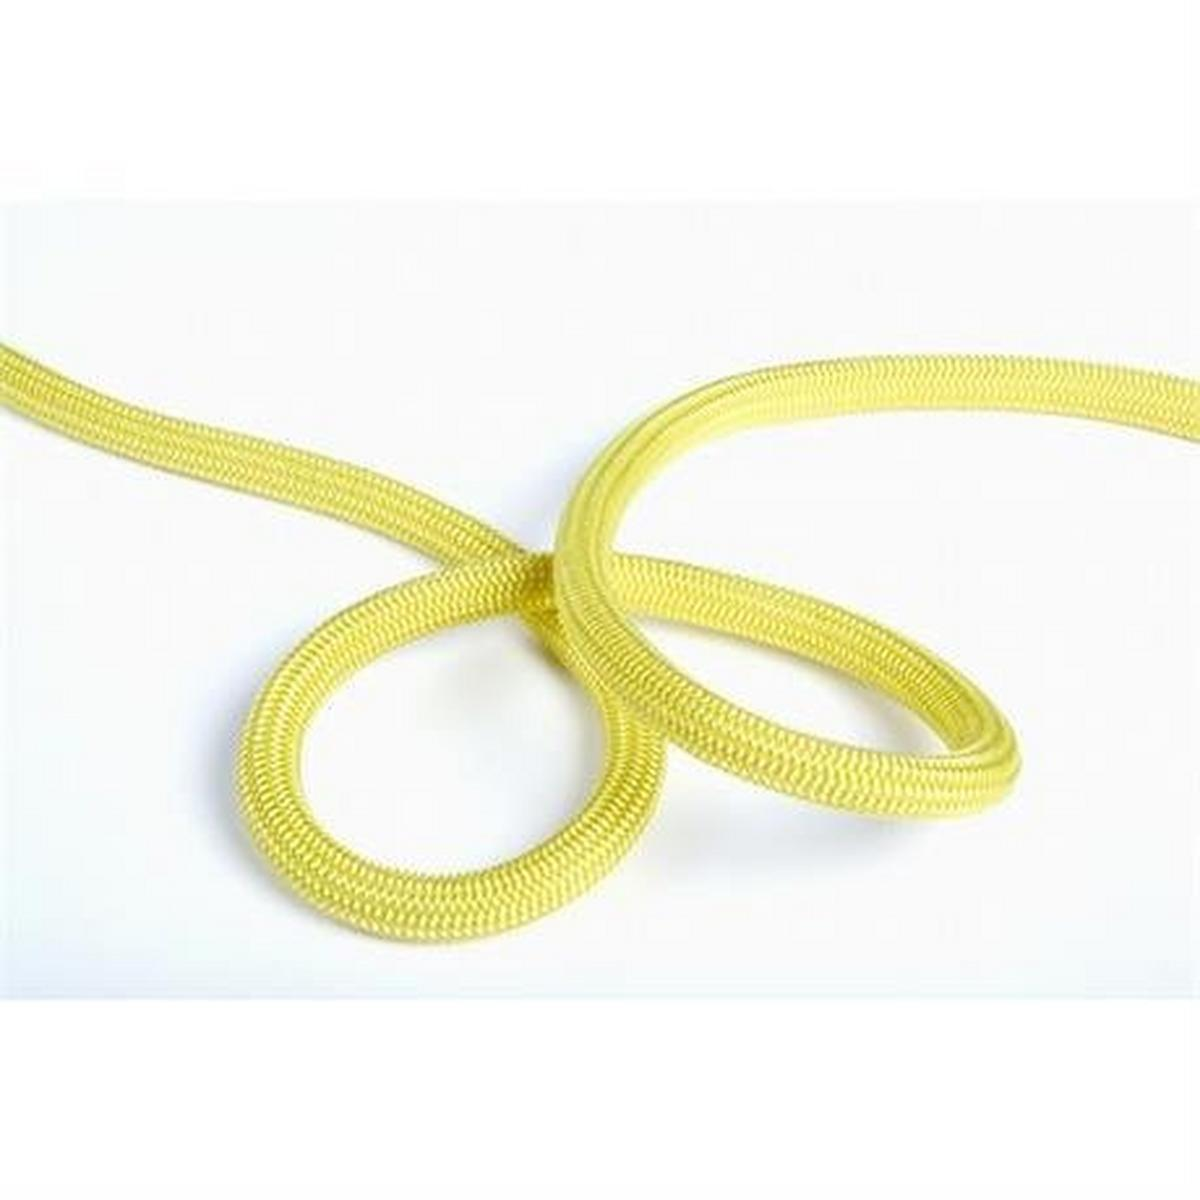 Edelweis s Ropes Accessory Cord 8mm Yellow